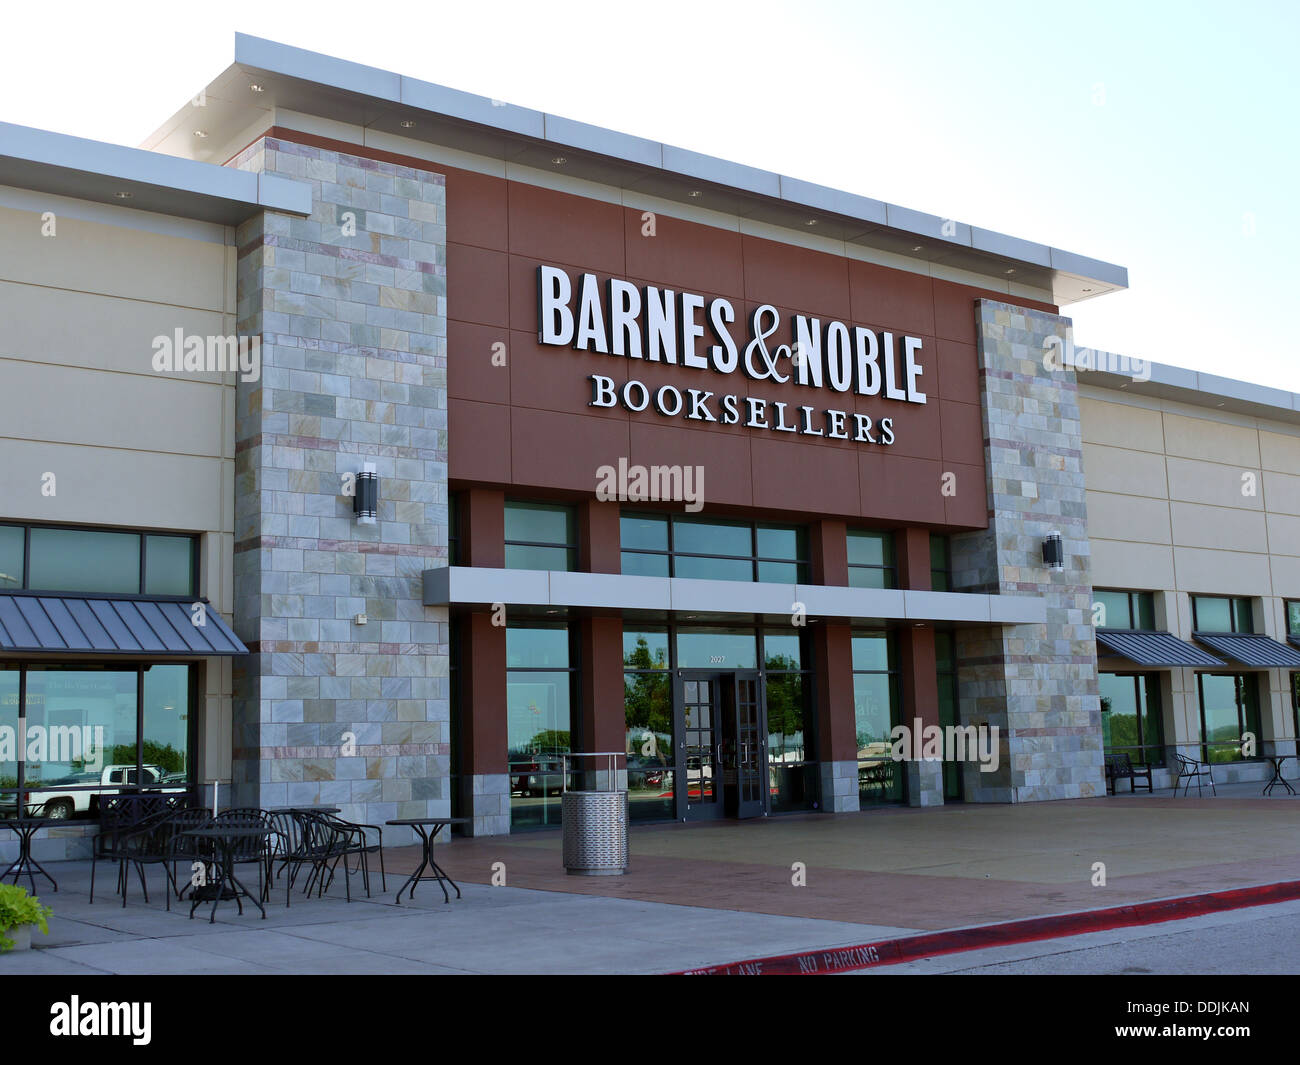 A Barnes and Nobles Book Sellers store in Arlington Texas. - Stock Image